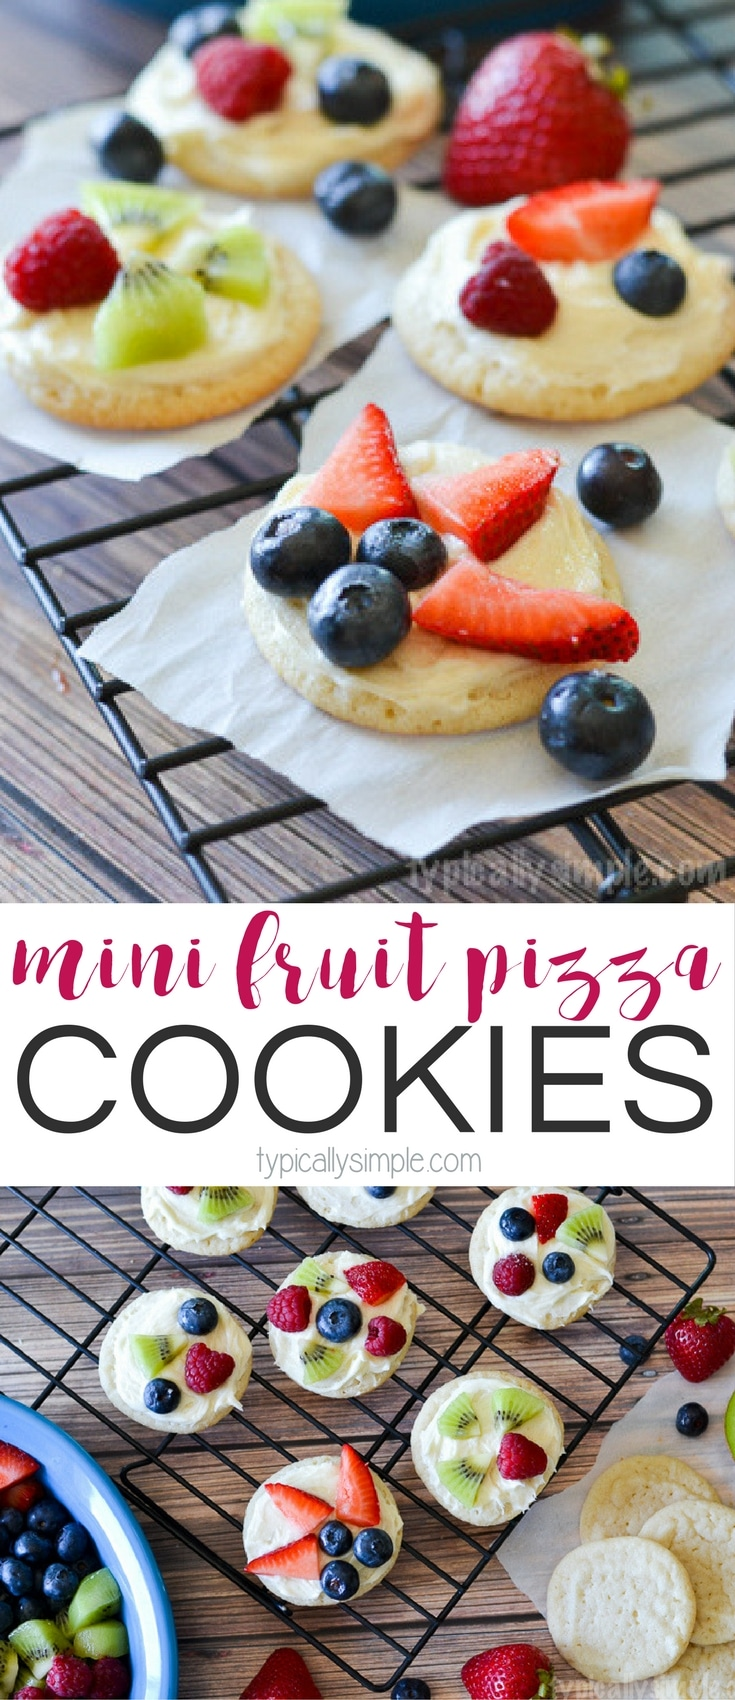 A simple dessert that only requires a few ingredients, these mini fruit pizza cookies are a delicious treat to make with the kids!